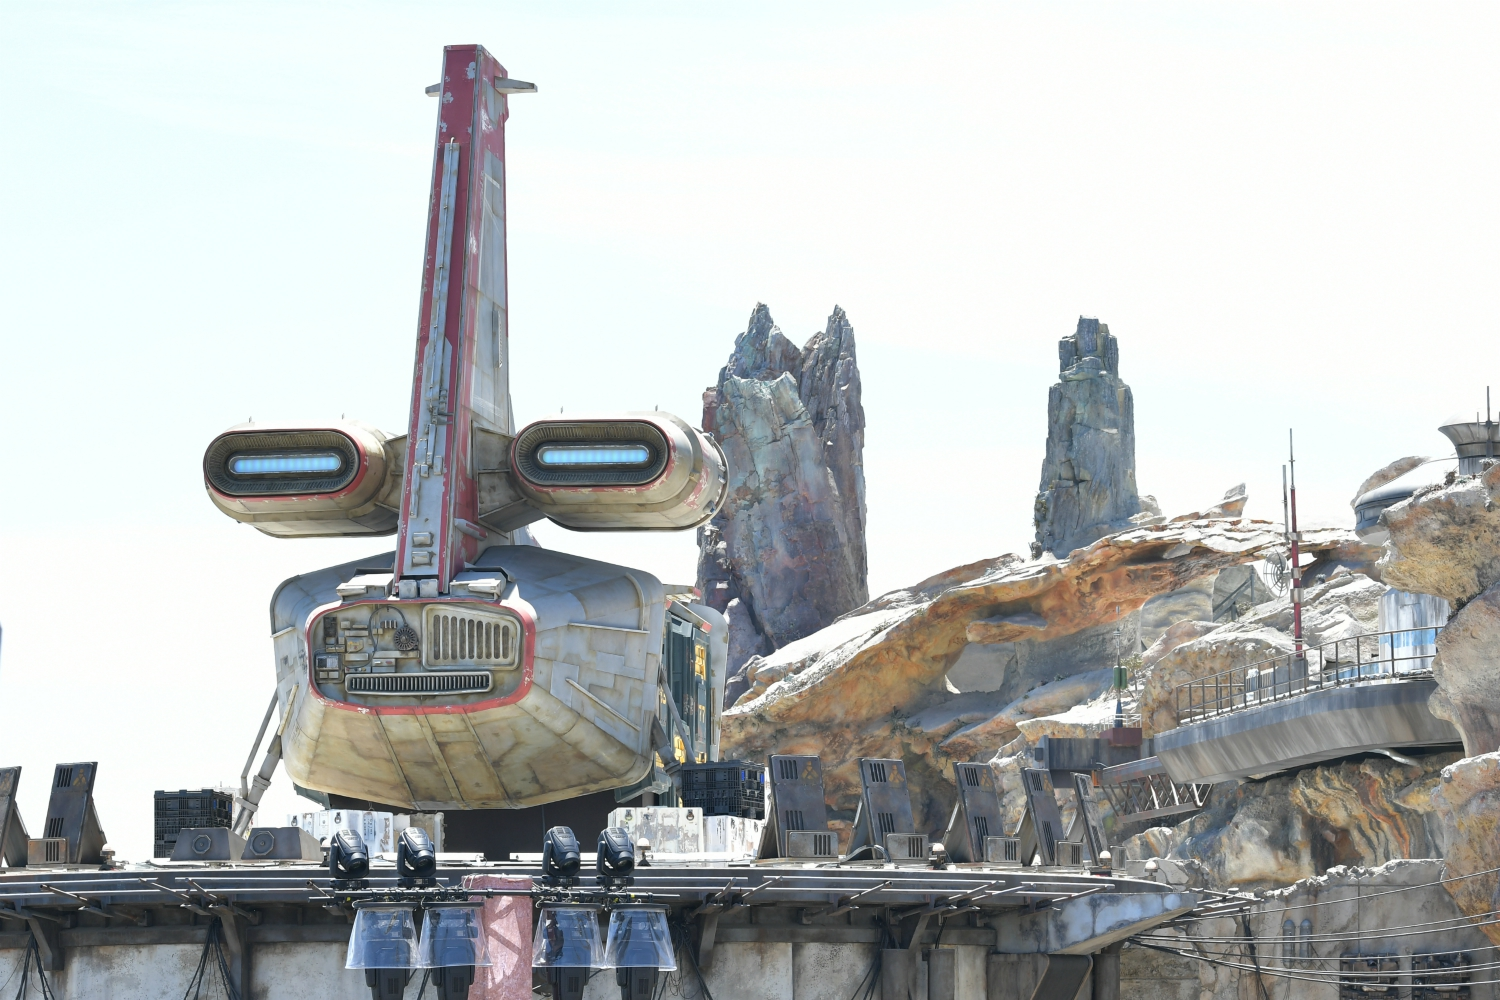 Disneyland Attendance Is Down—and Stars Wars: Galaxy's Edge Could Be to Blame